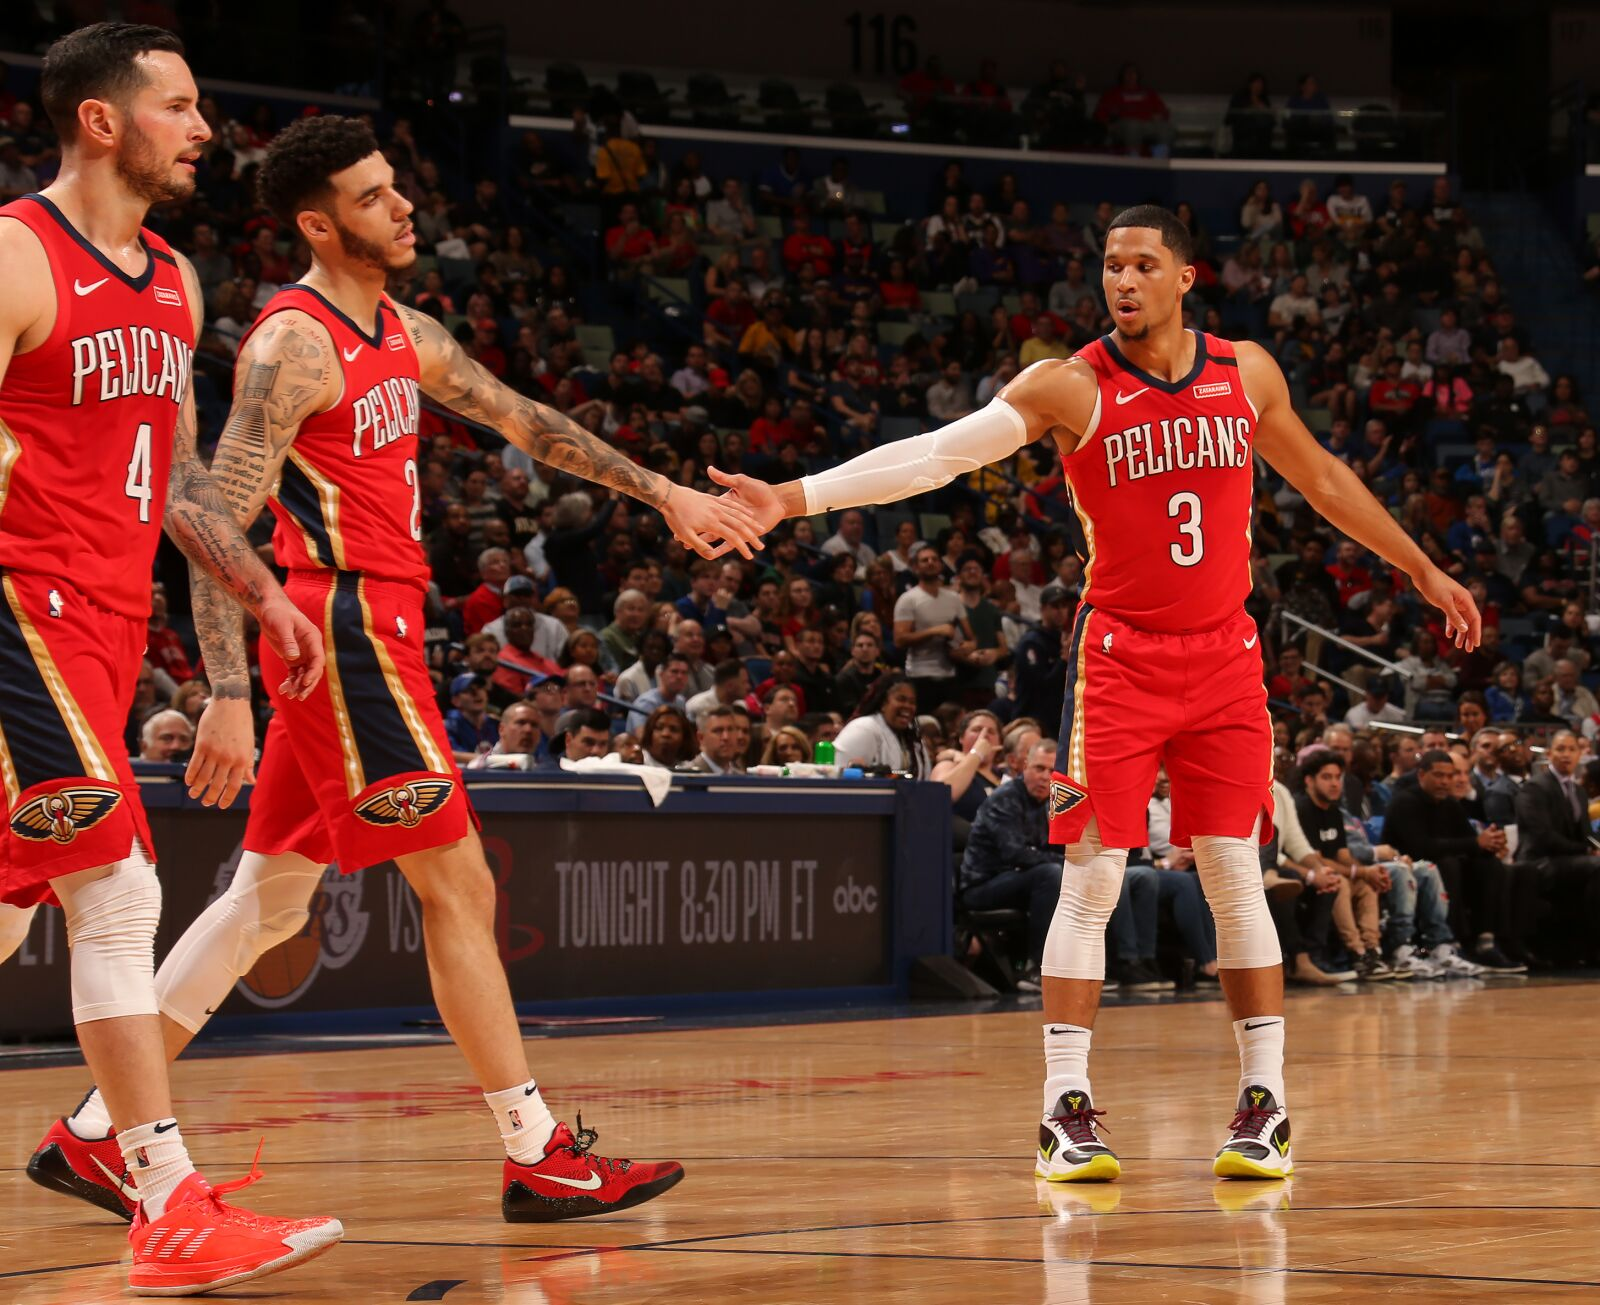 New Orleans Pelicans narrow loss to Clippers shows playoff poise